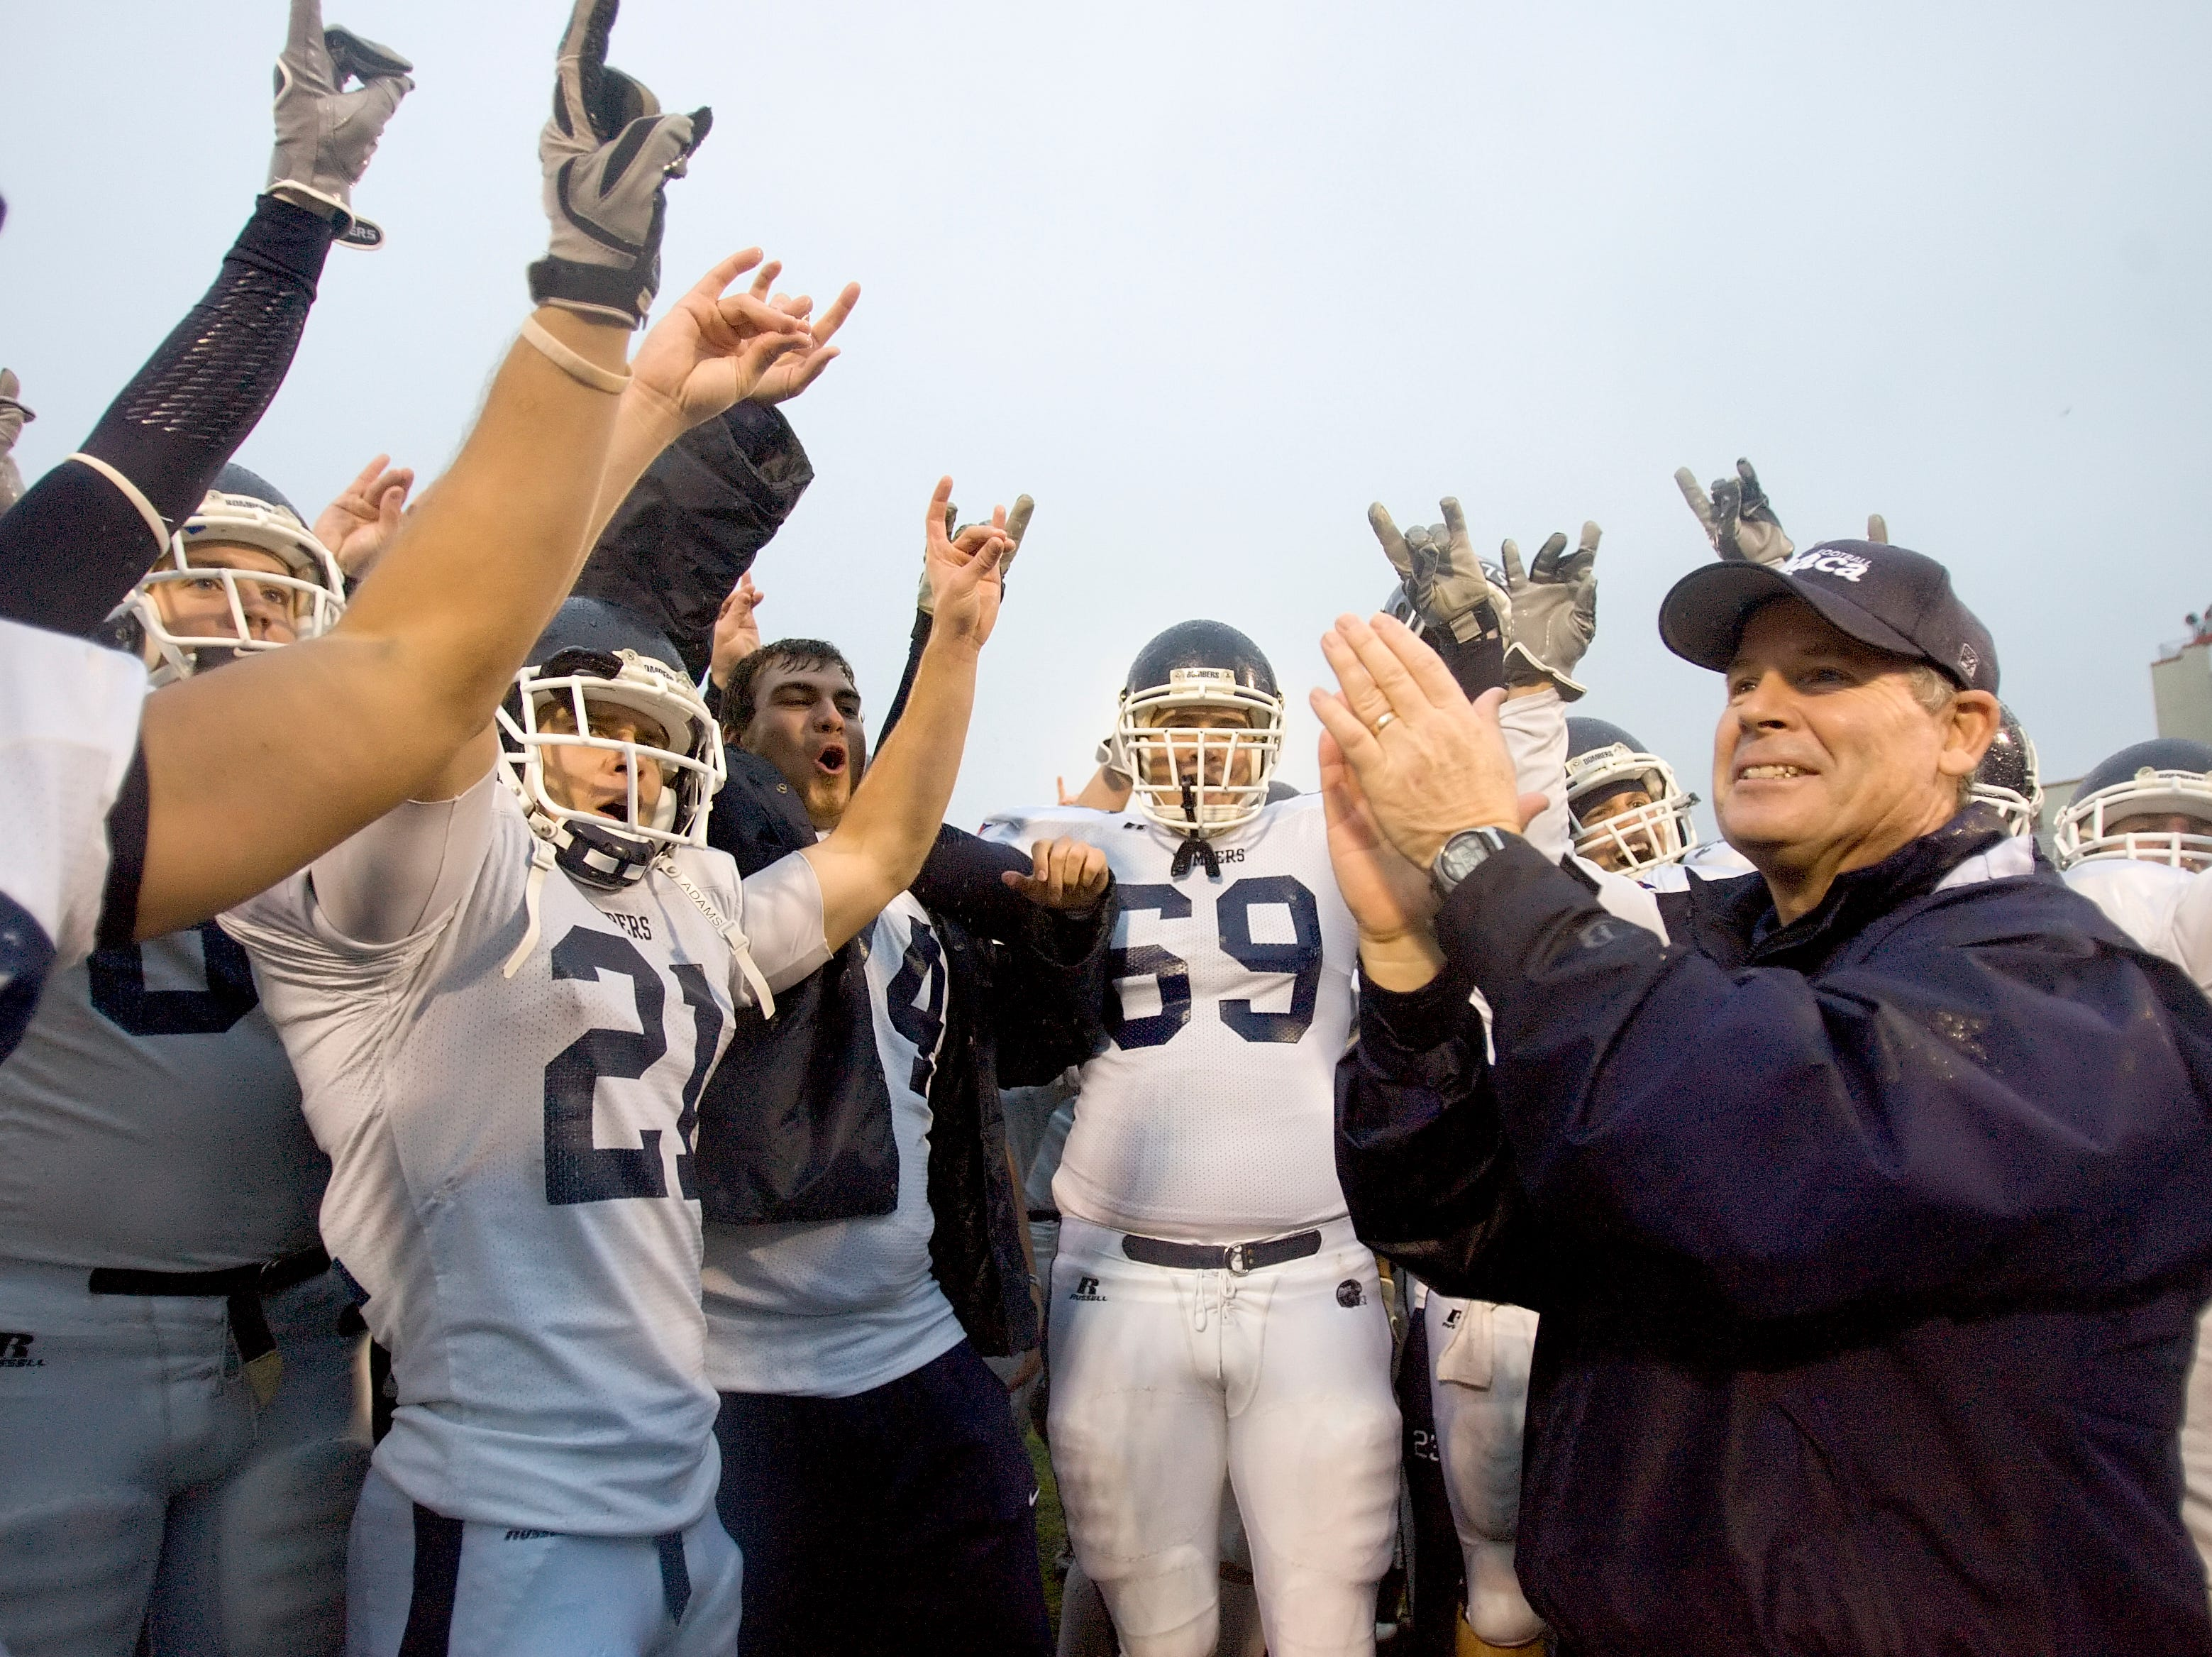 2008: Ithaca College Football Head Coach Mike Welch, right, and his team, the Bombers, celebrate their victory against Cortland on Saturday during the Cortaca Jug at SUNY Cortland.